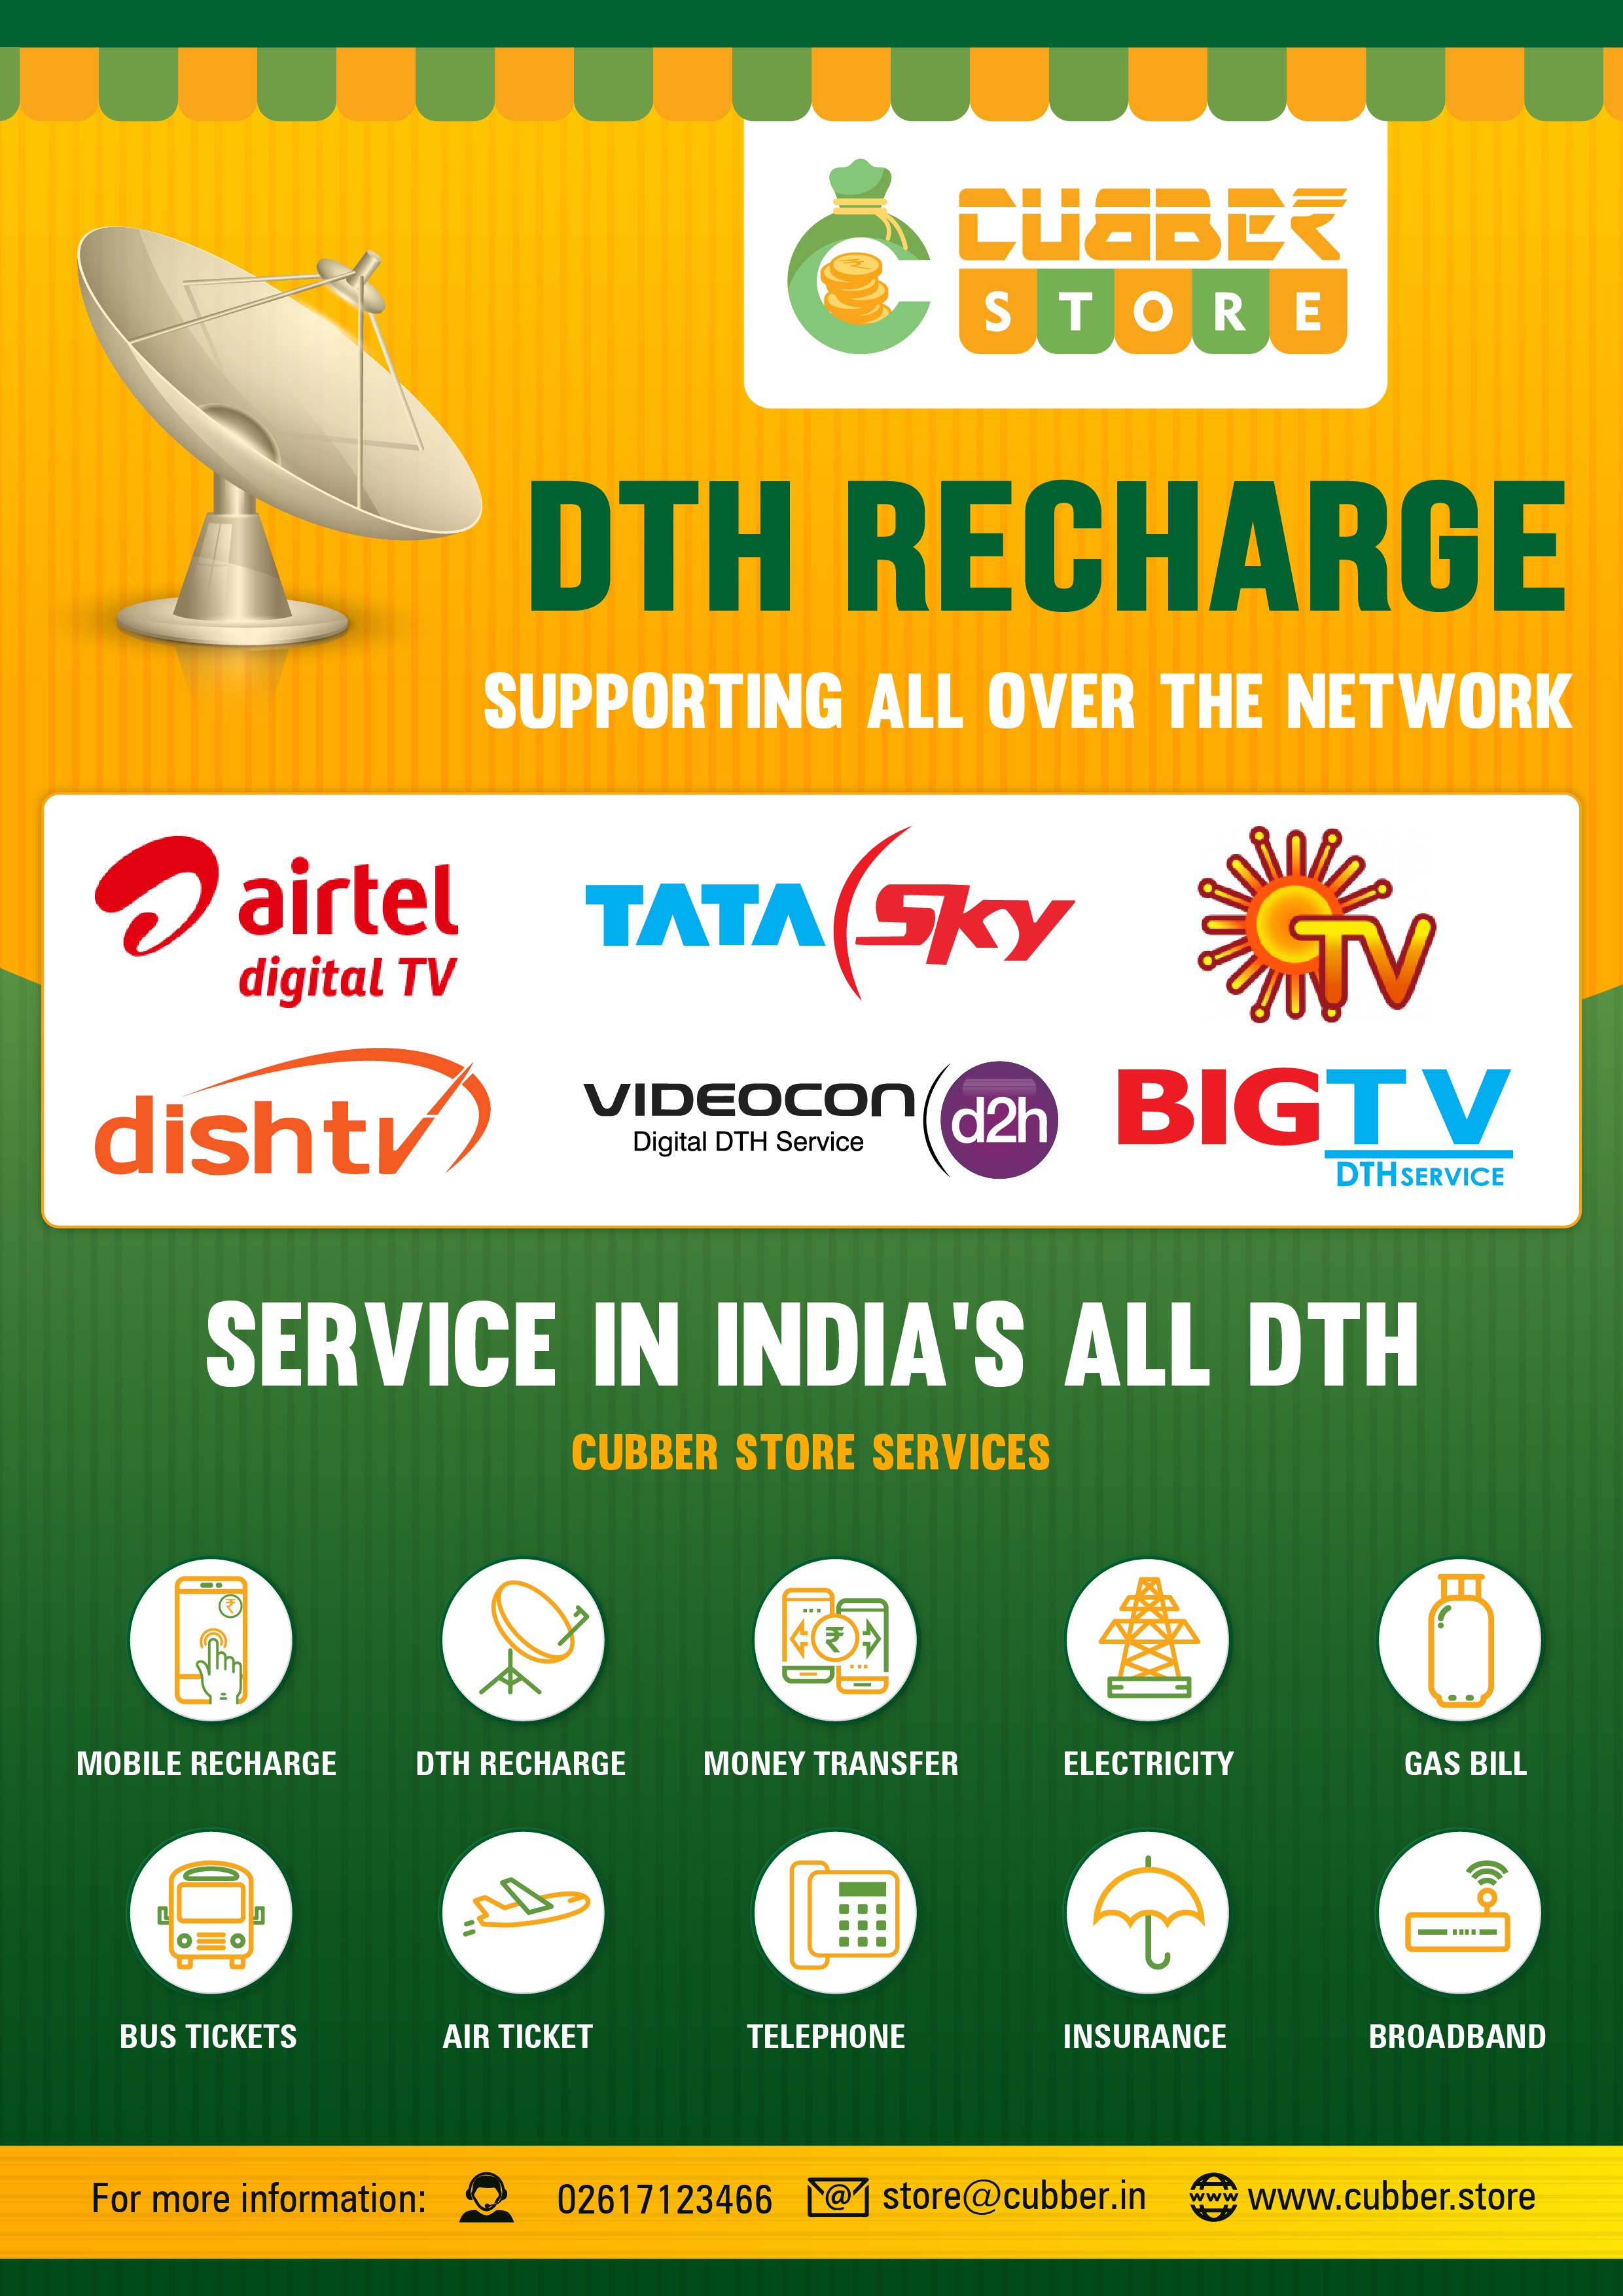 Online Mobile and DTH Recharge business For Retailers and